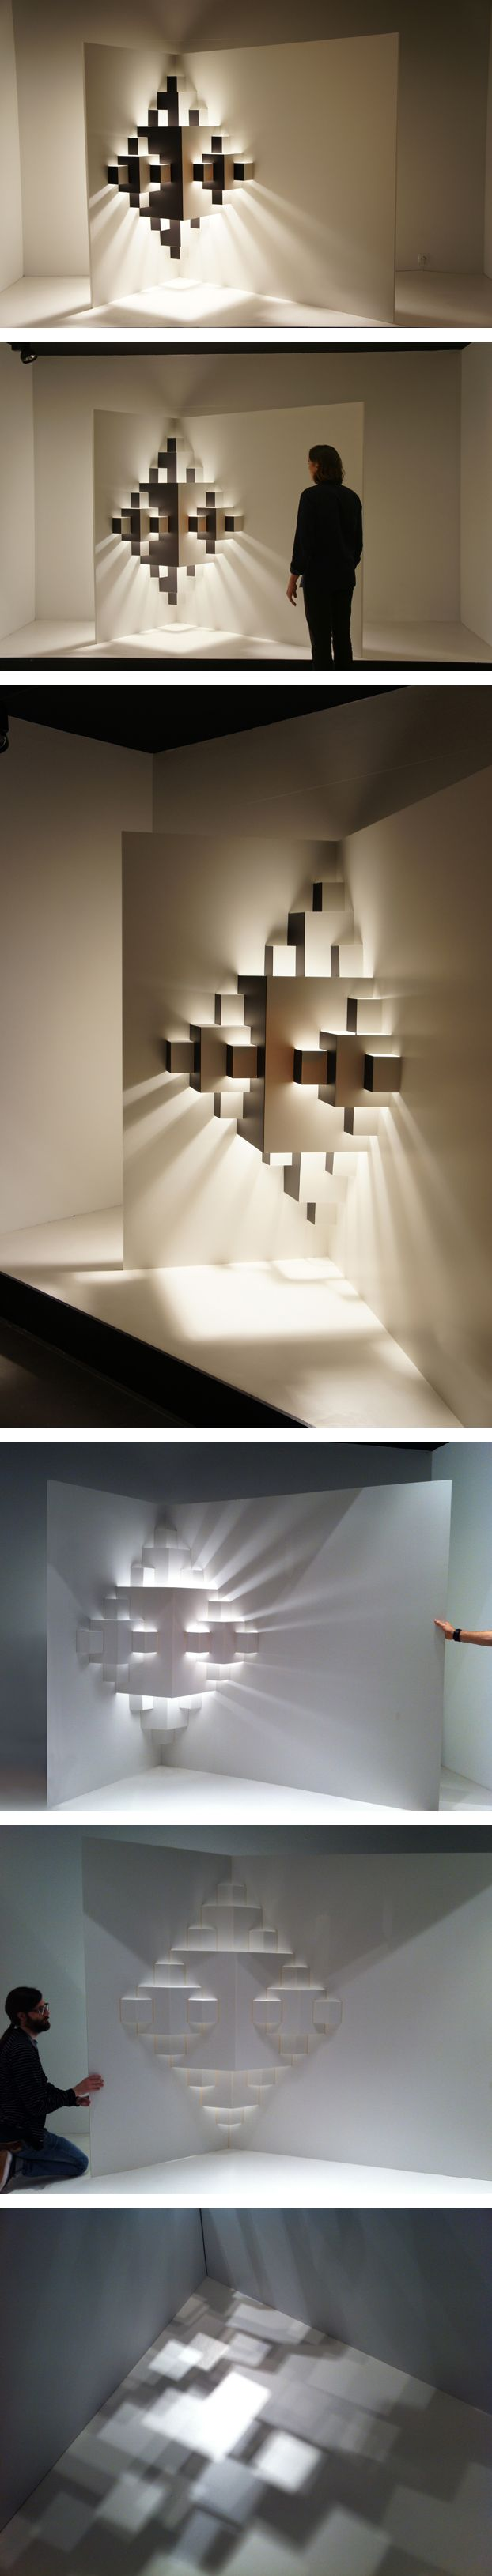 Well Well Designers. Pixel. Window display. light installation – paper Dimensions 2,5 x 3. http://www.wellwelldesigners.com/work/pixel